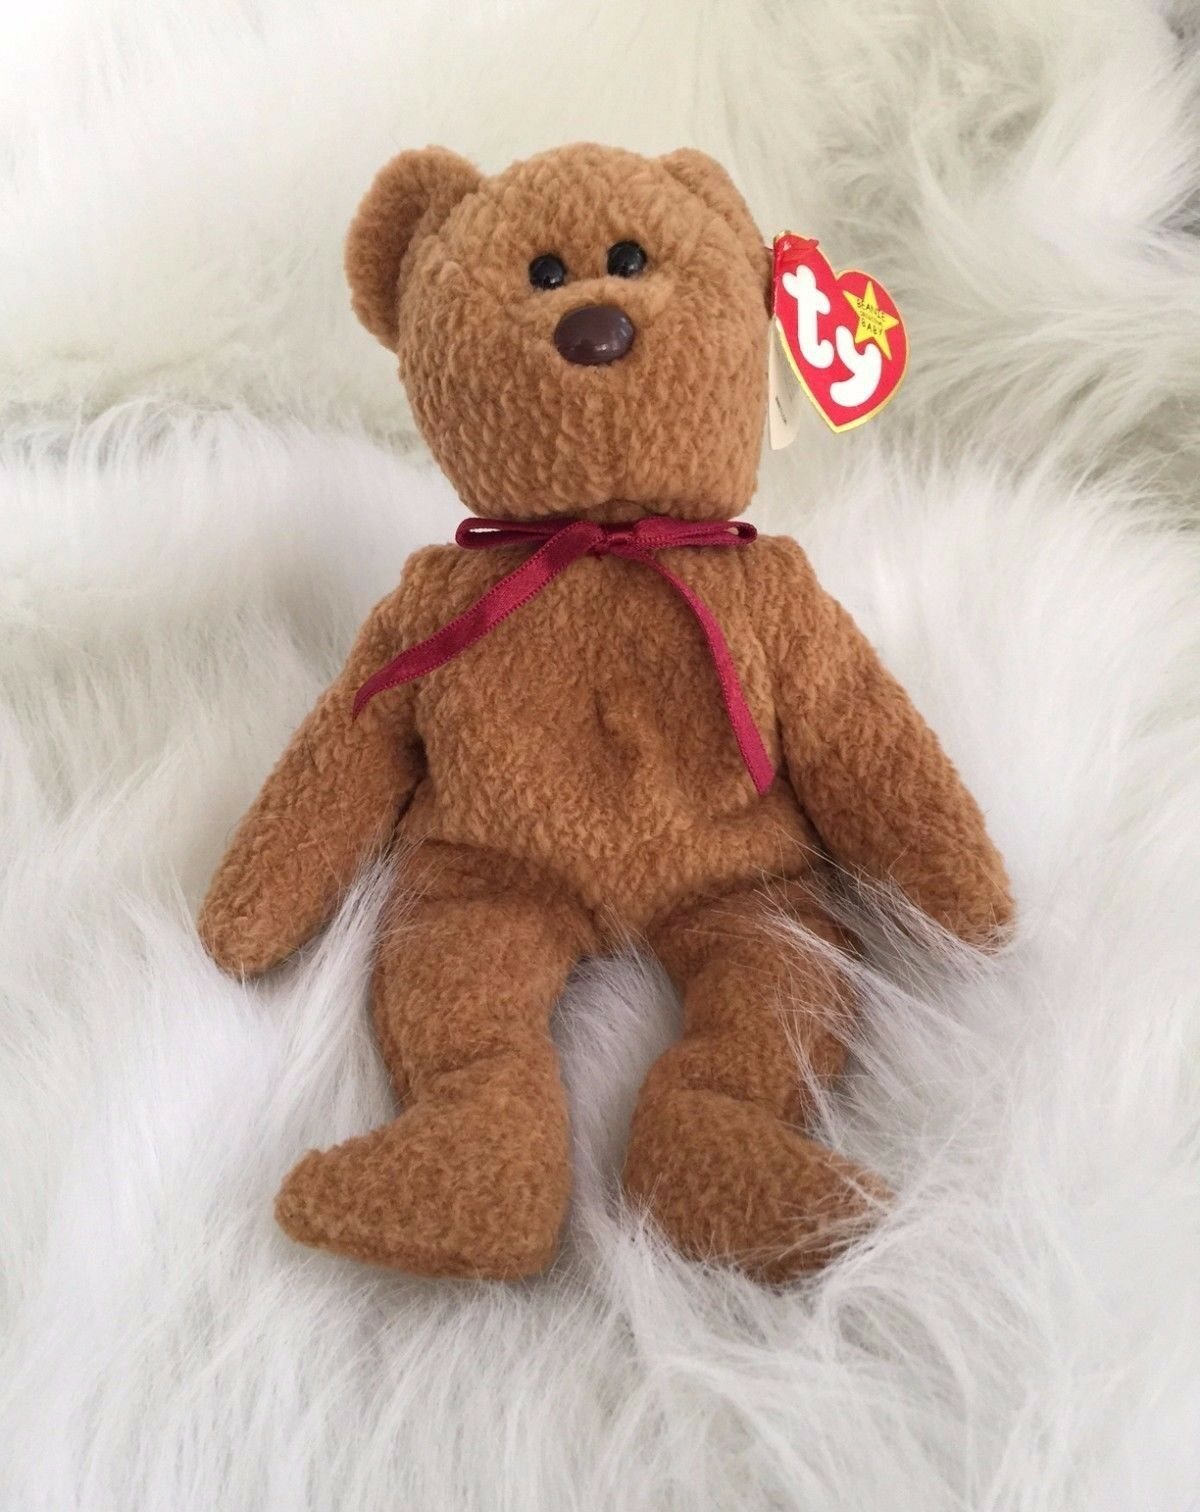 Curly RARE ERROR Ty Beanie Baby NWT Authentic hang tag and tush tag errors